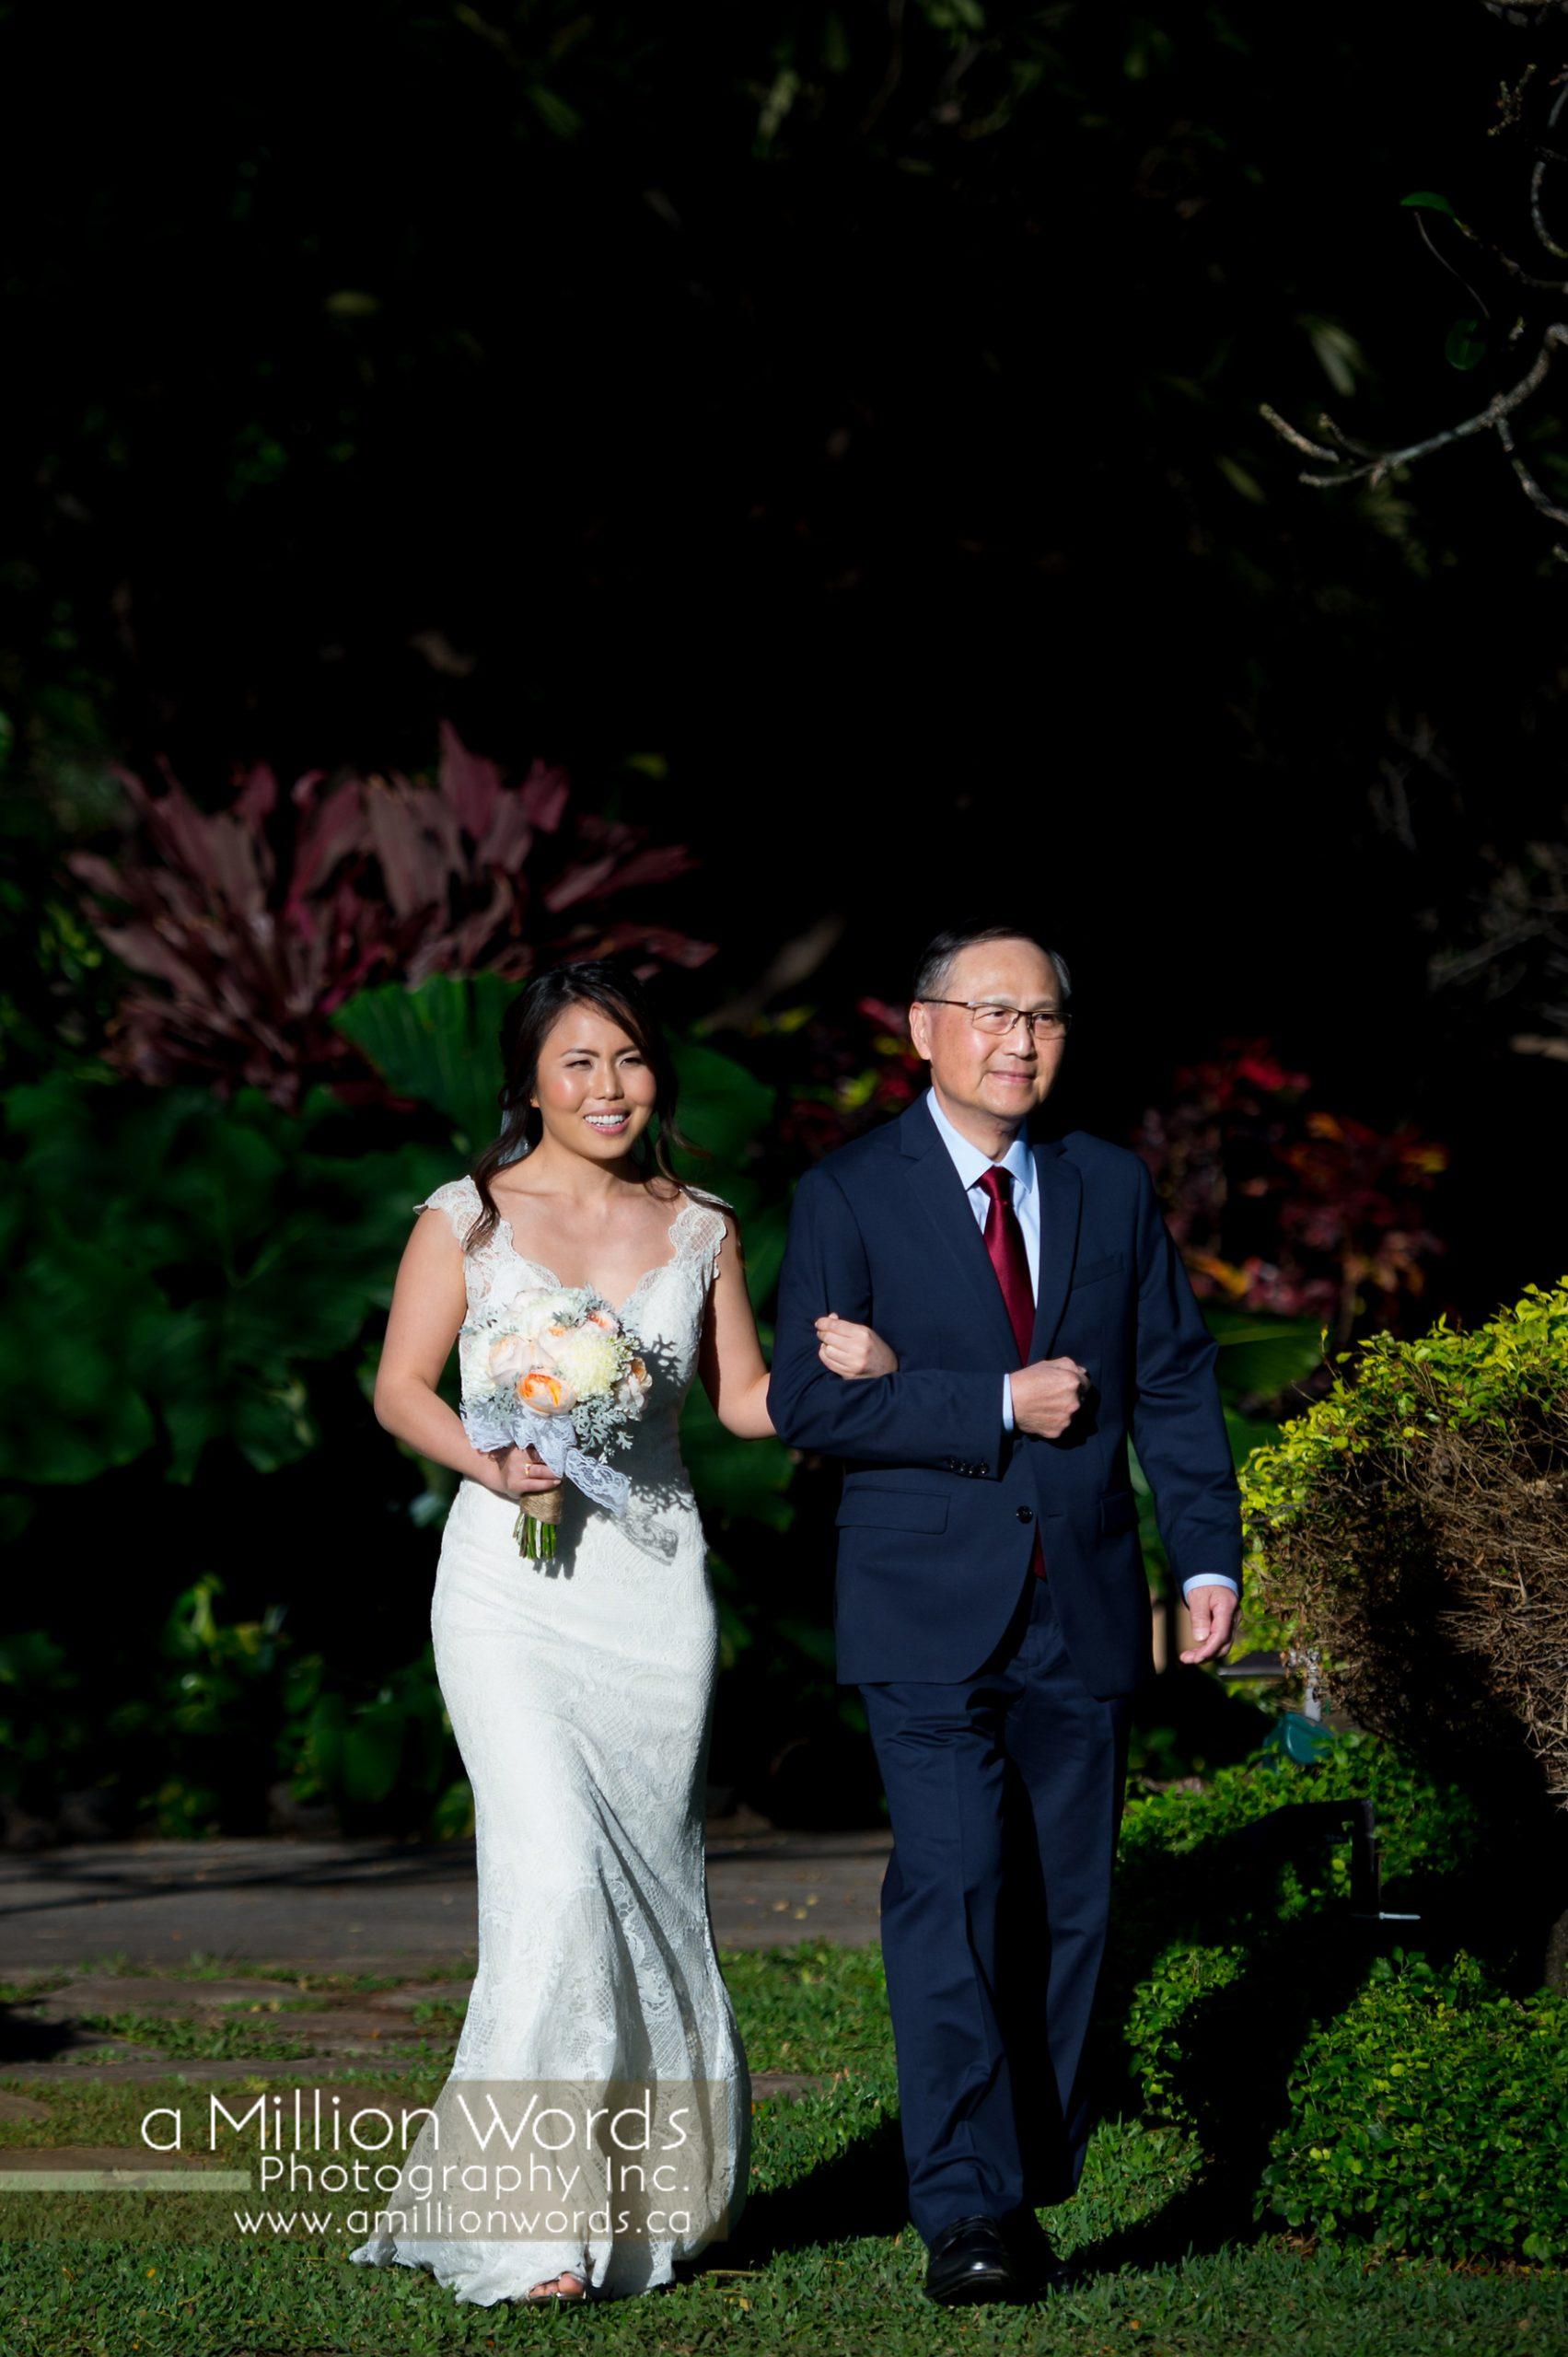 kw_destination_wedding_photography30